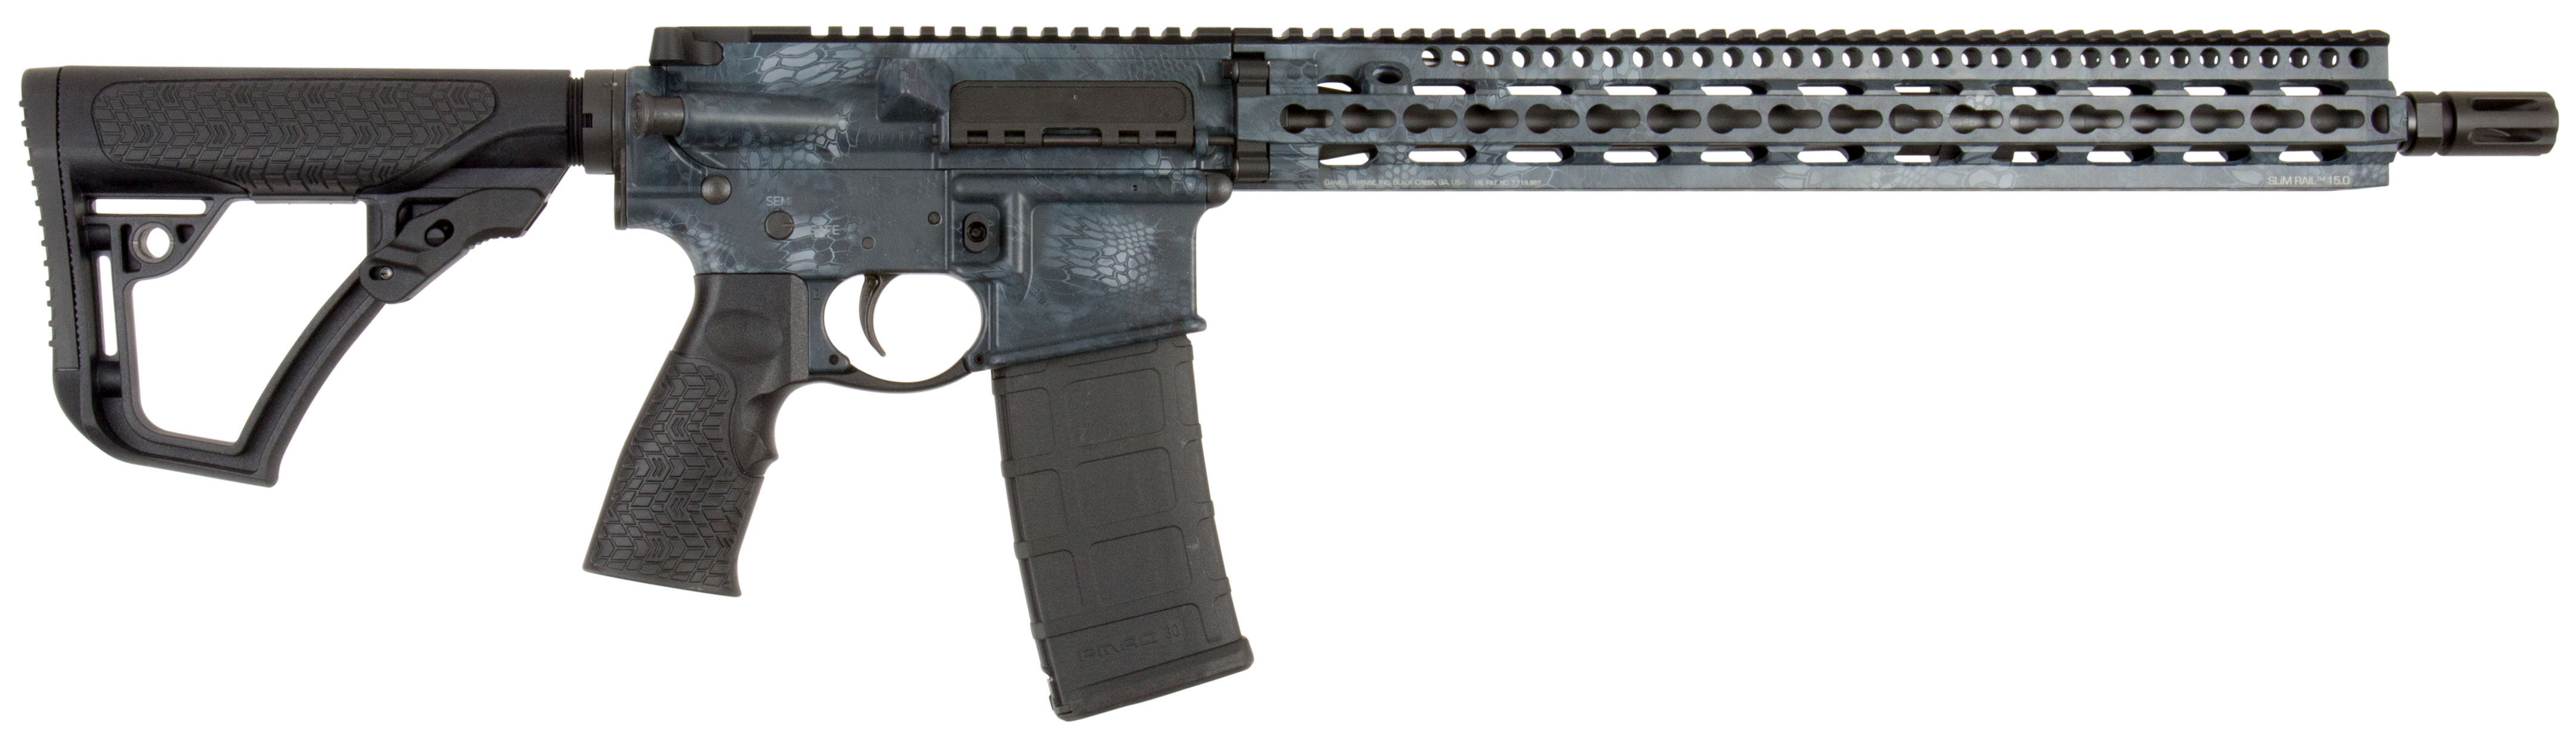 Daniel Defense 05148055 DDM4 V11 *CA Compliant* Semi-Automatic 223 Remington/5.56 NATO 16